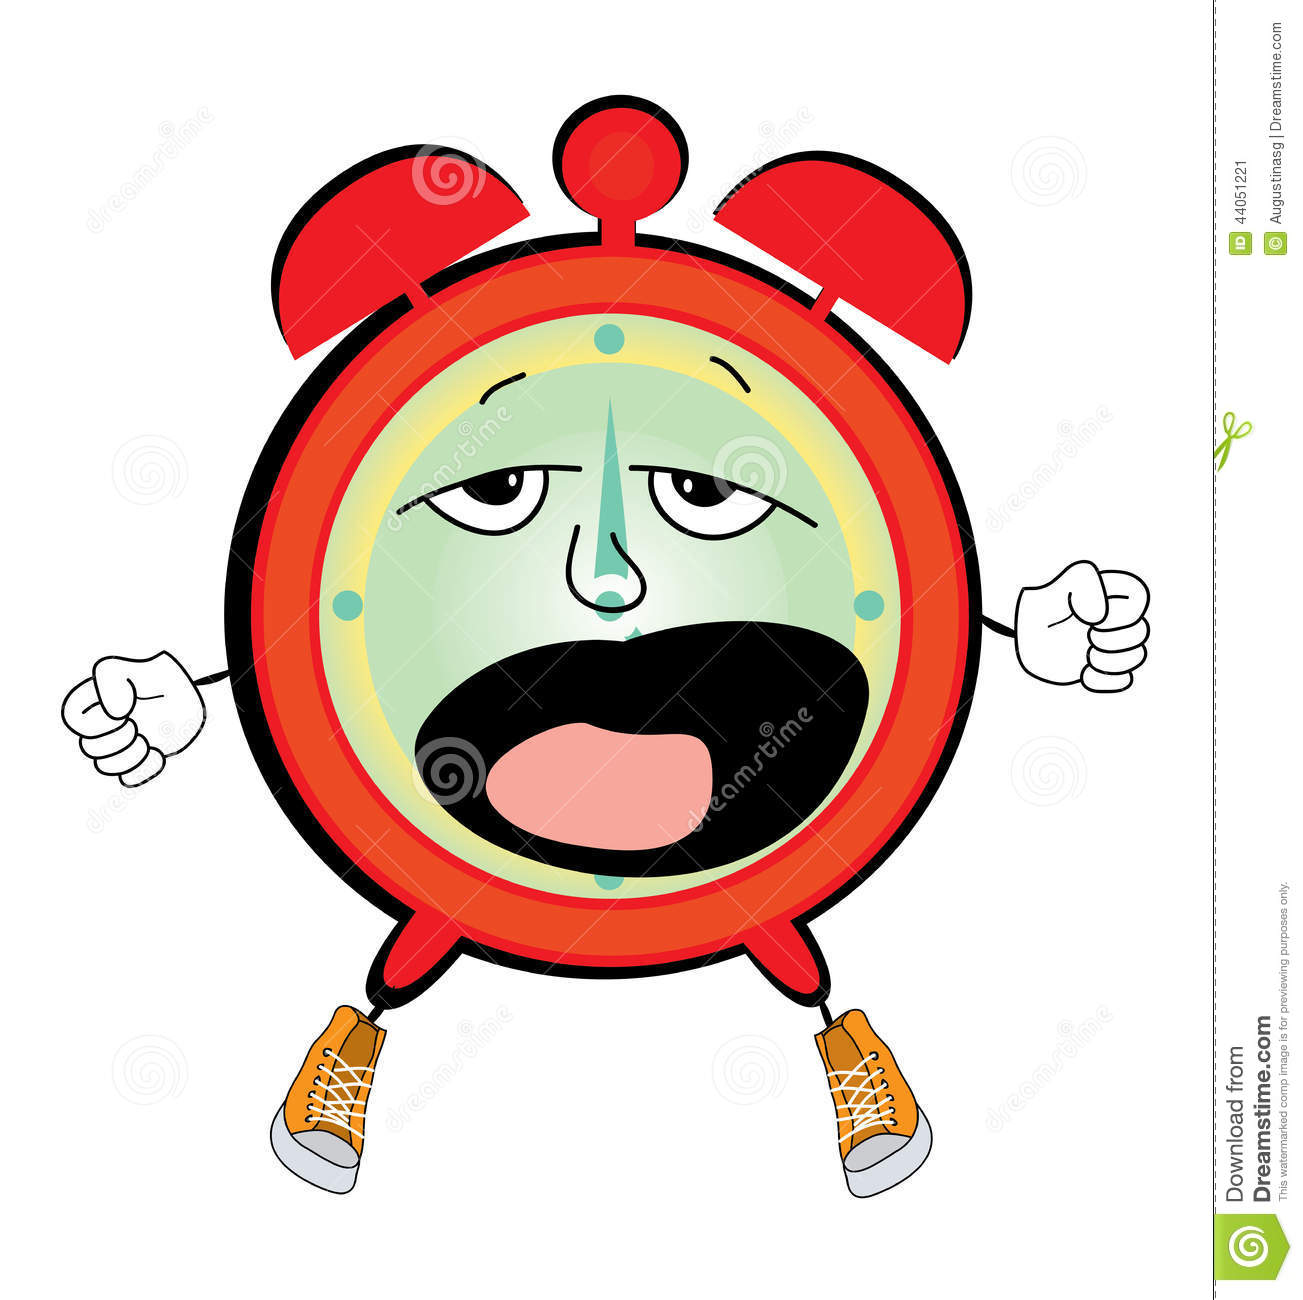 Yawning Alarm Clock Cartoon Stock Illustration - Image: 44051221